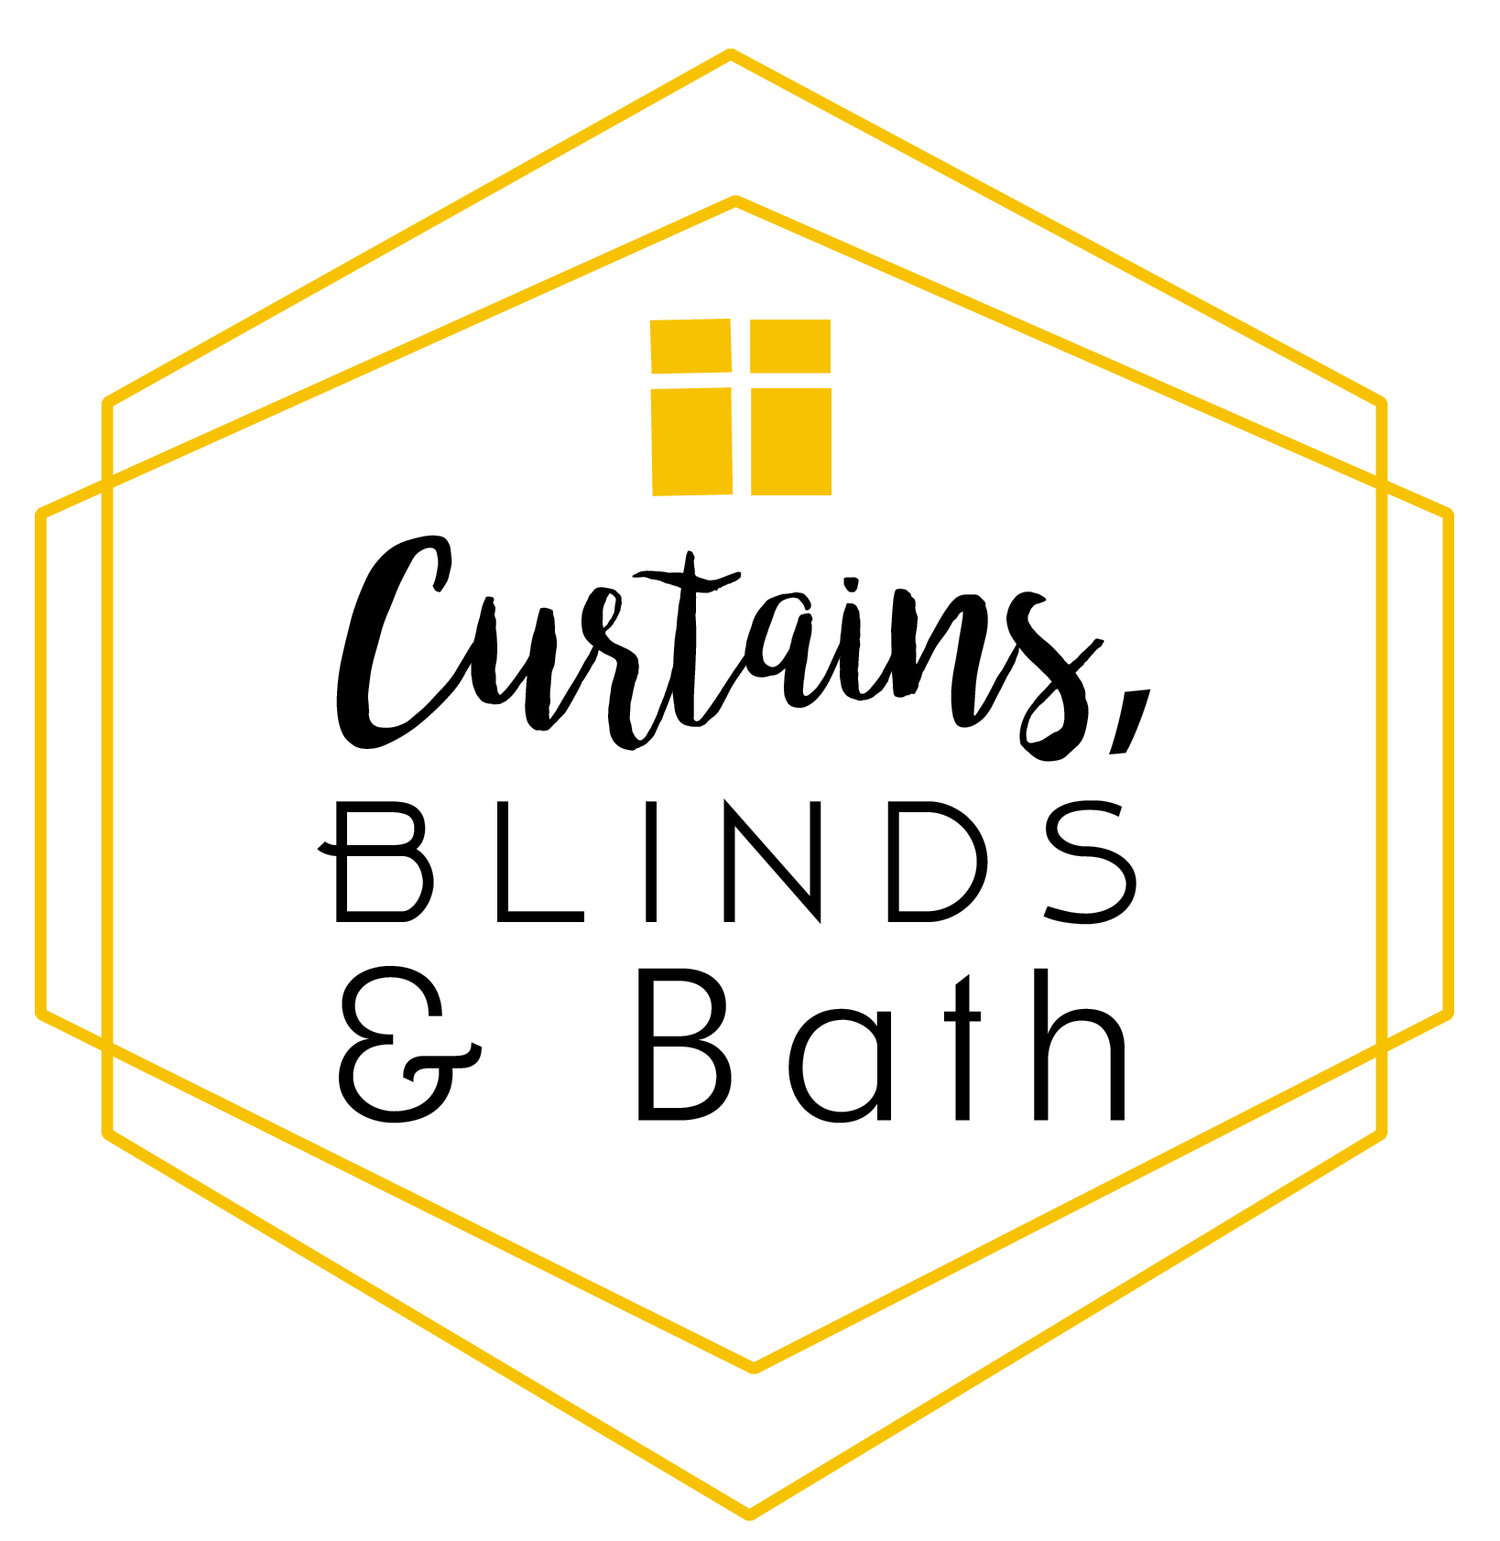 Curtains, Blinds & Bath